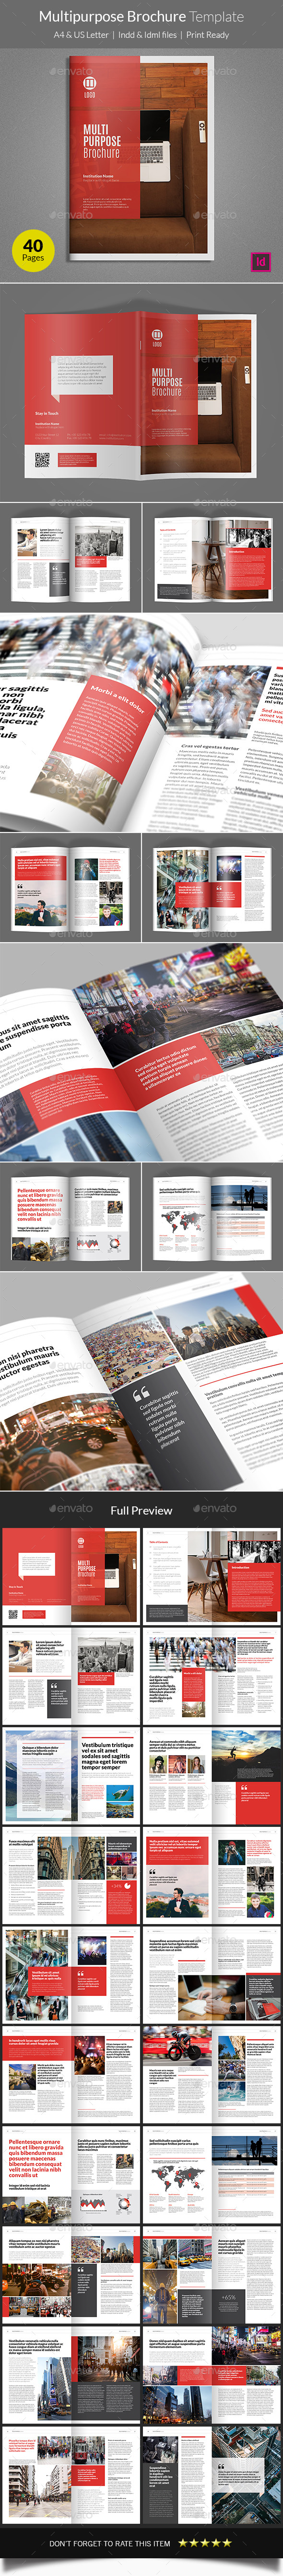 Multipurpose Brochure Template - Informational Brochures